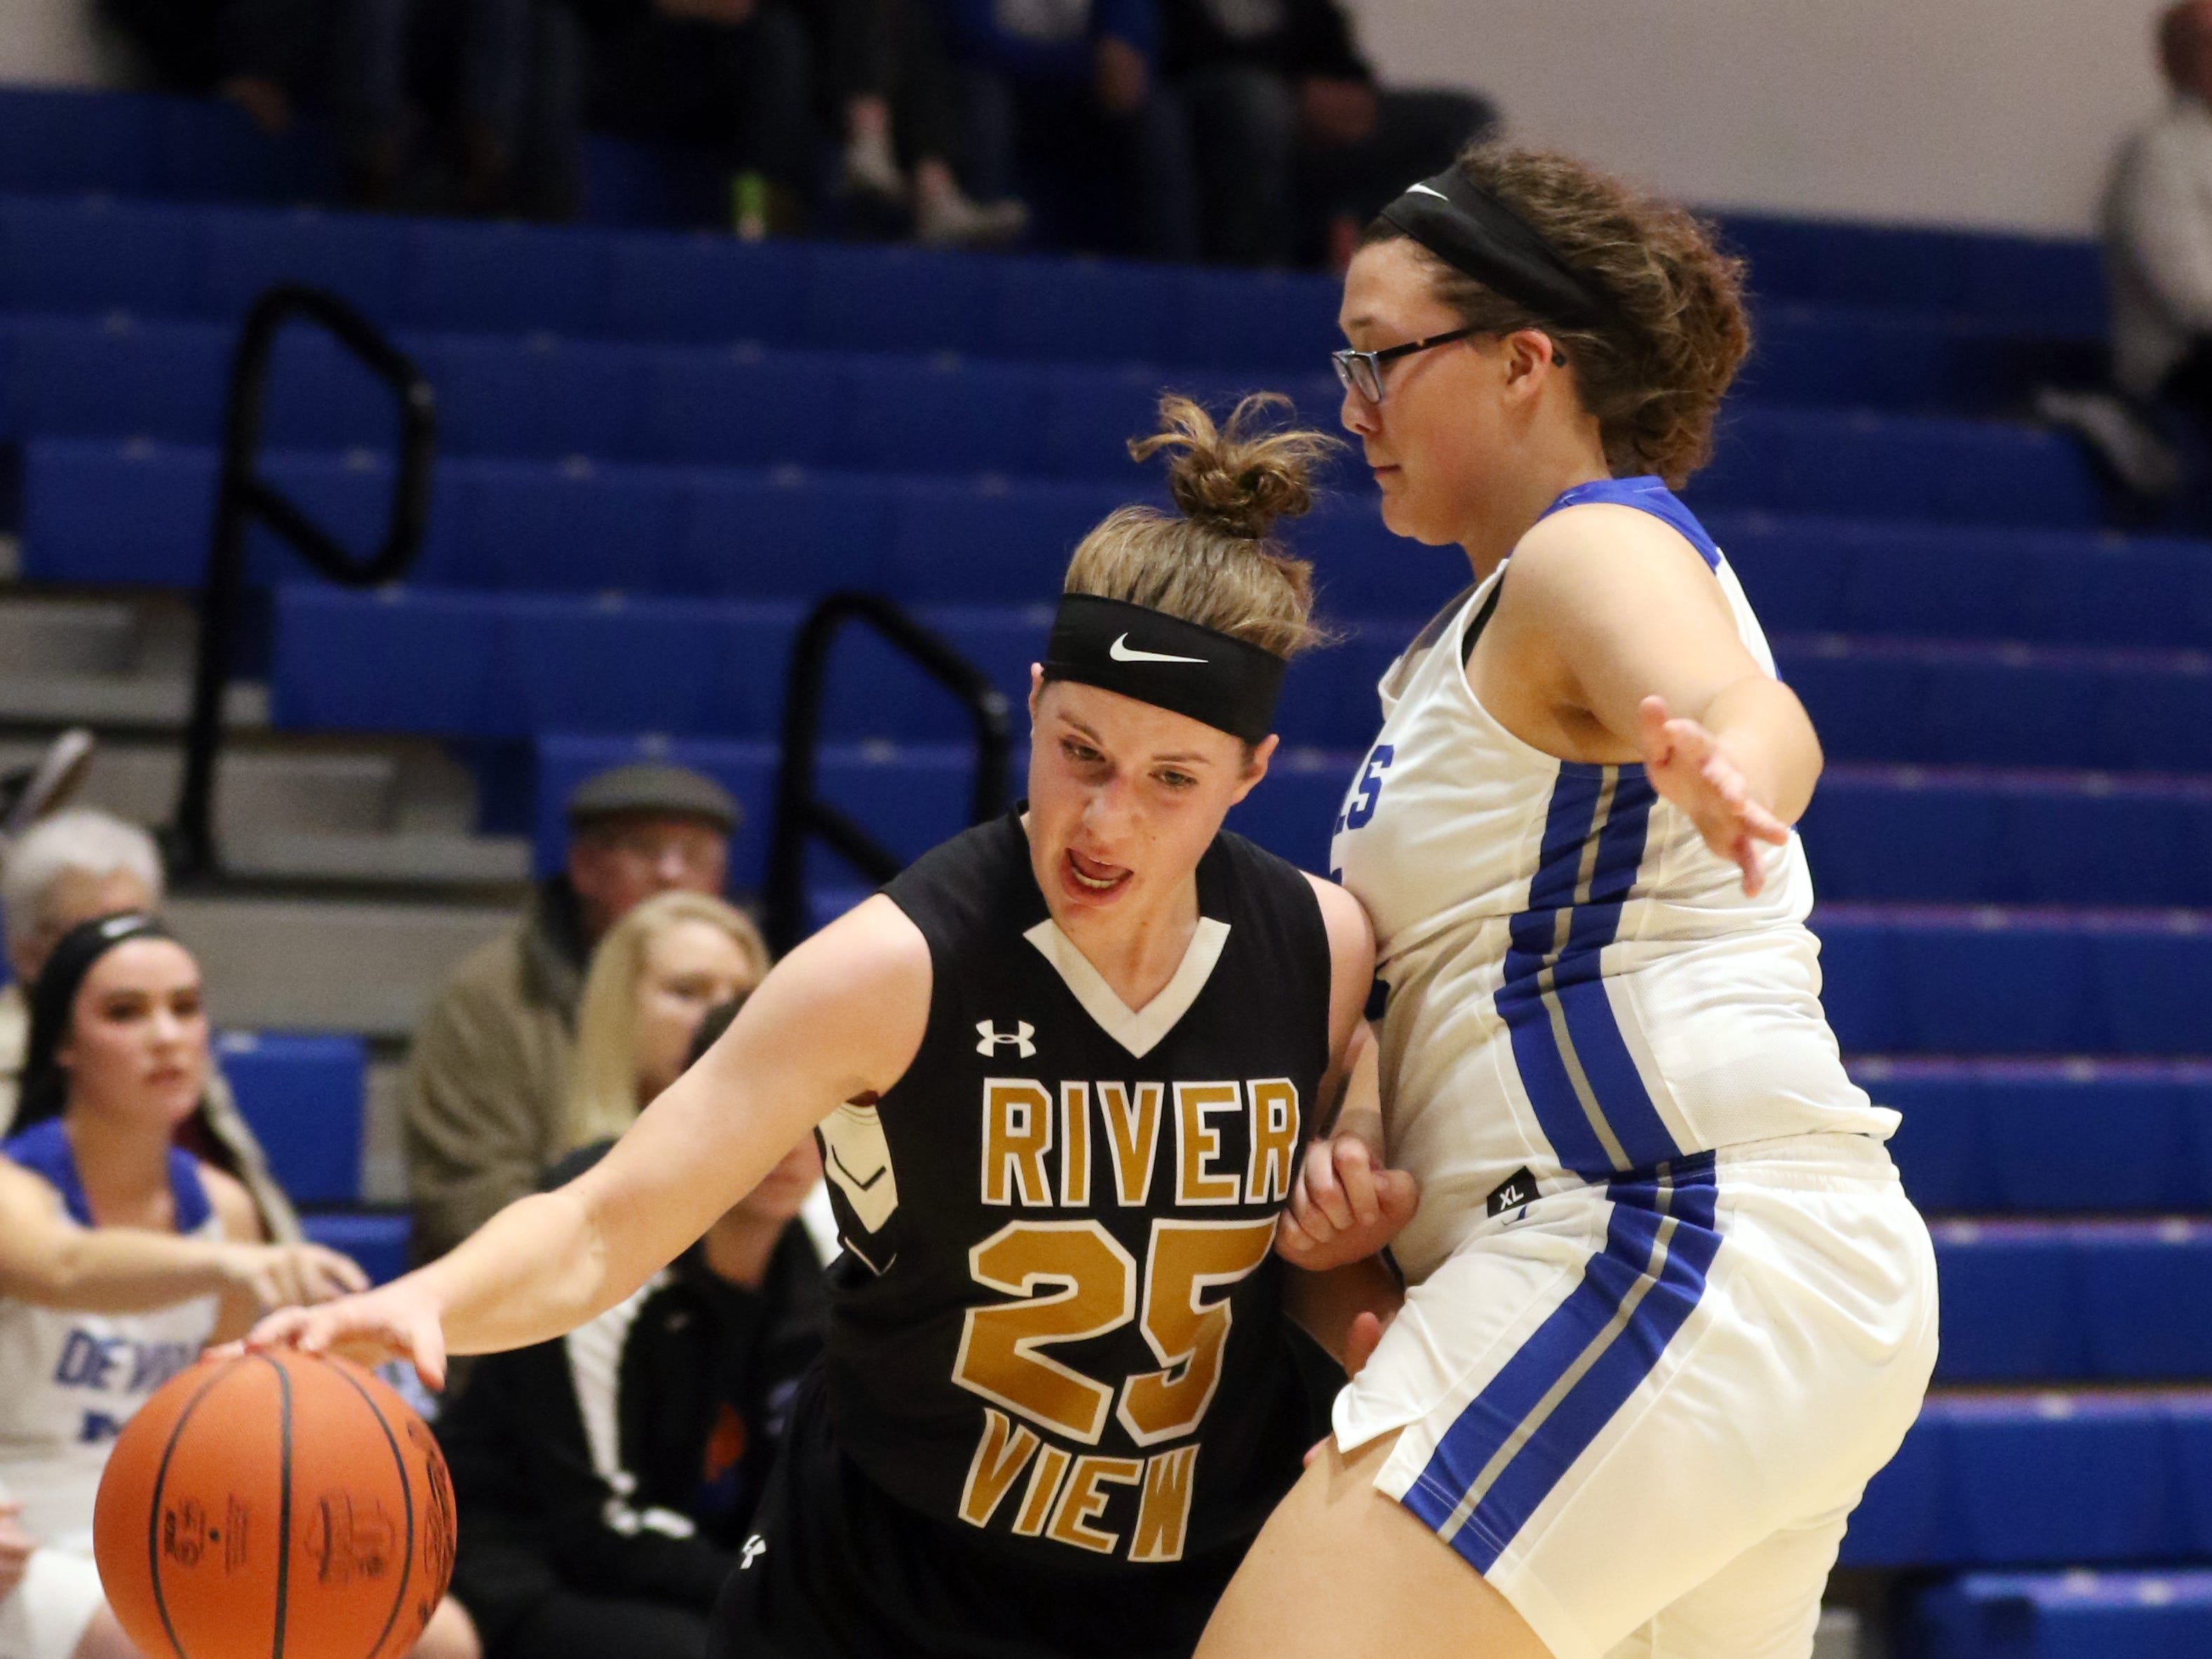 River View's Jessica Hartsock fights her way past a Zanesville defender.